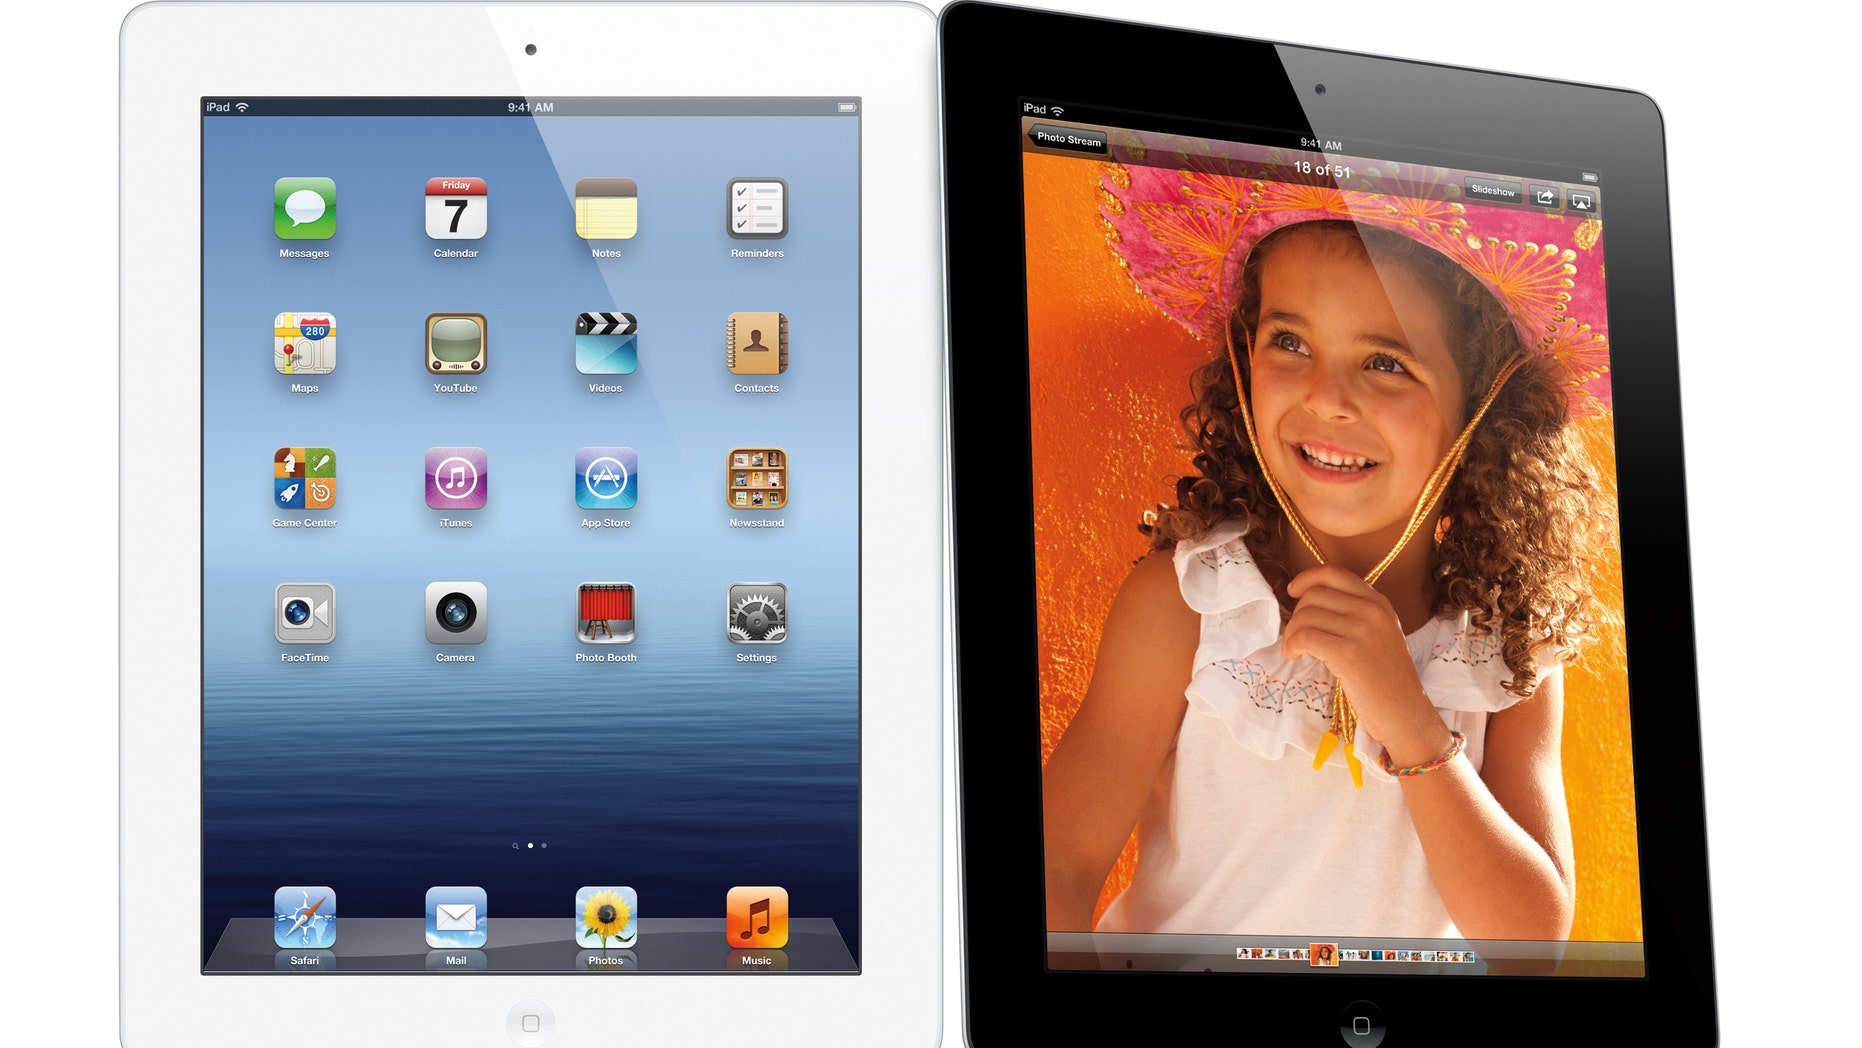 The new iPad features a sharper screen and a faster processor. Apple says the new display will be even sharper than the high-definition television set in the living room.